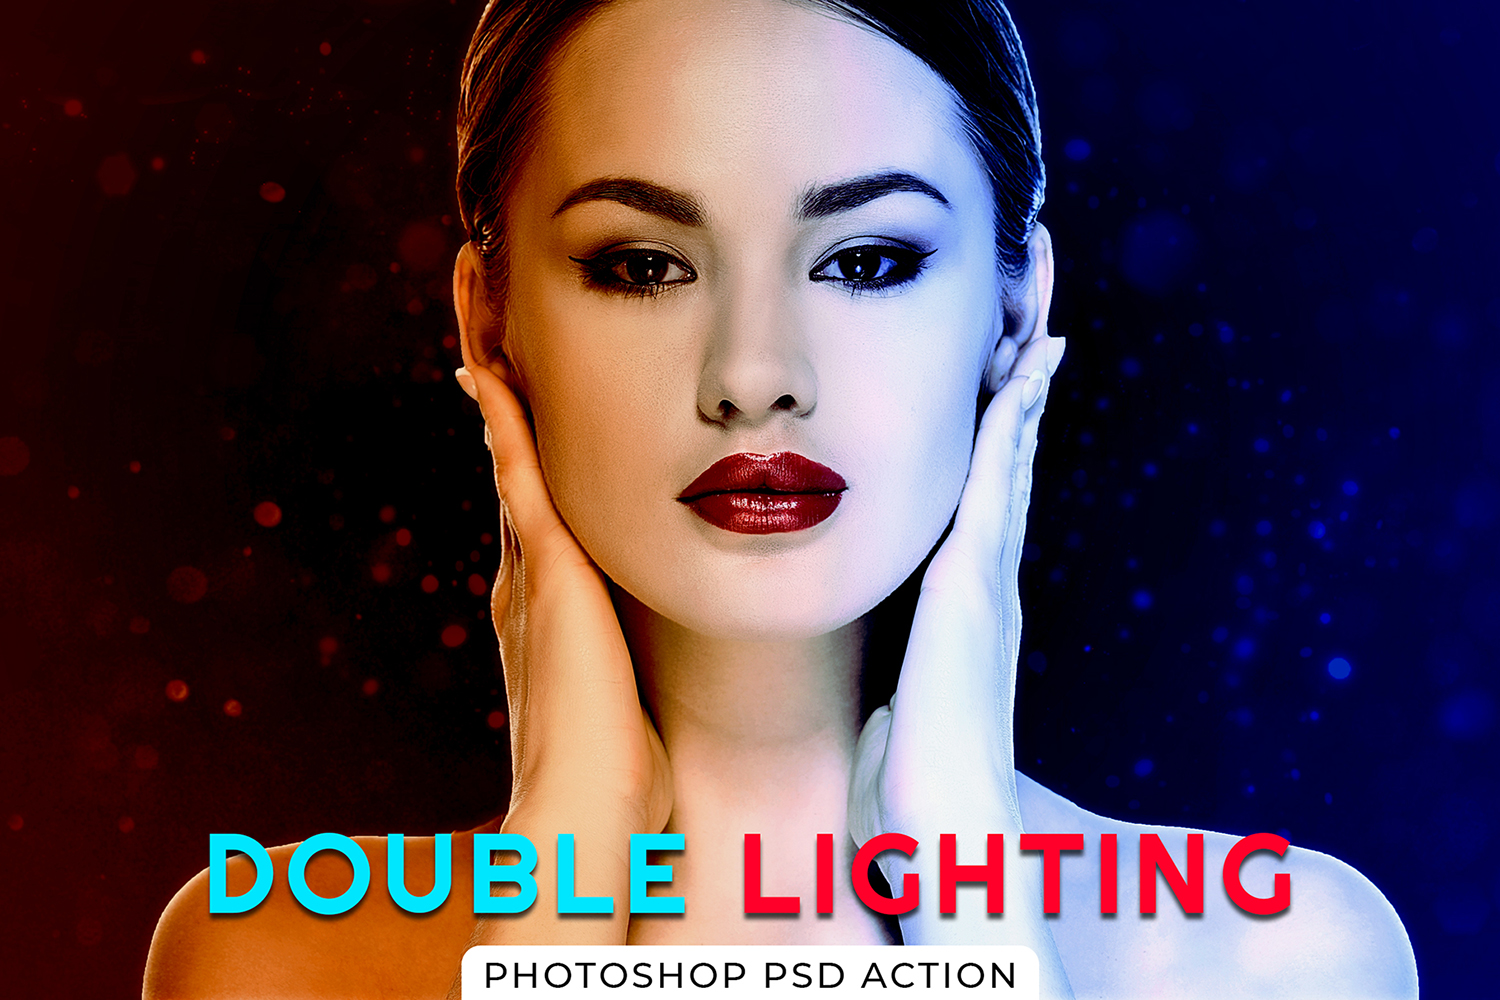 Download Free Double Lighting Photoshop Psd Action Graphic By Creative Tacos for Cricut Explore, Silhouette and other cutting machines.